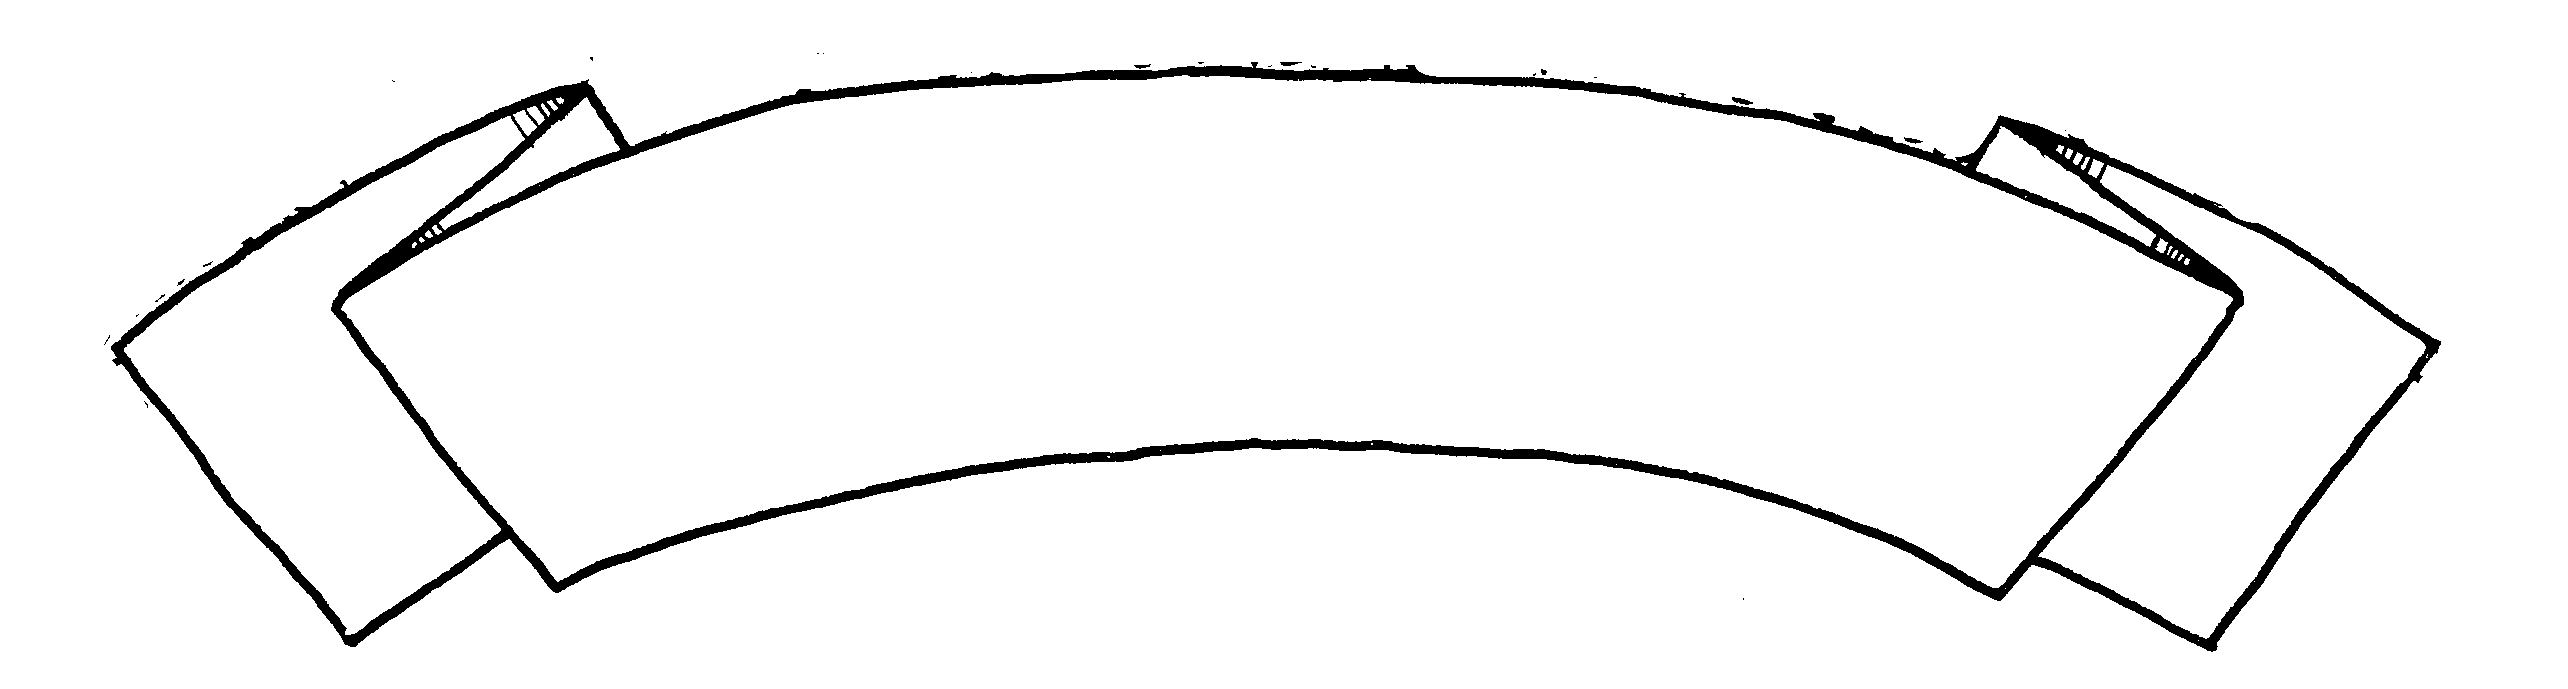 Free outline blank banner. Banners clipart fancy